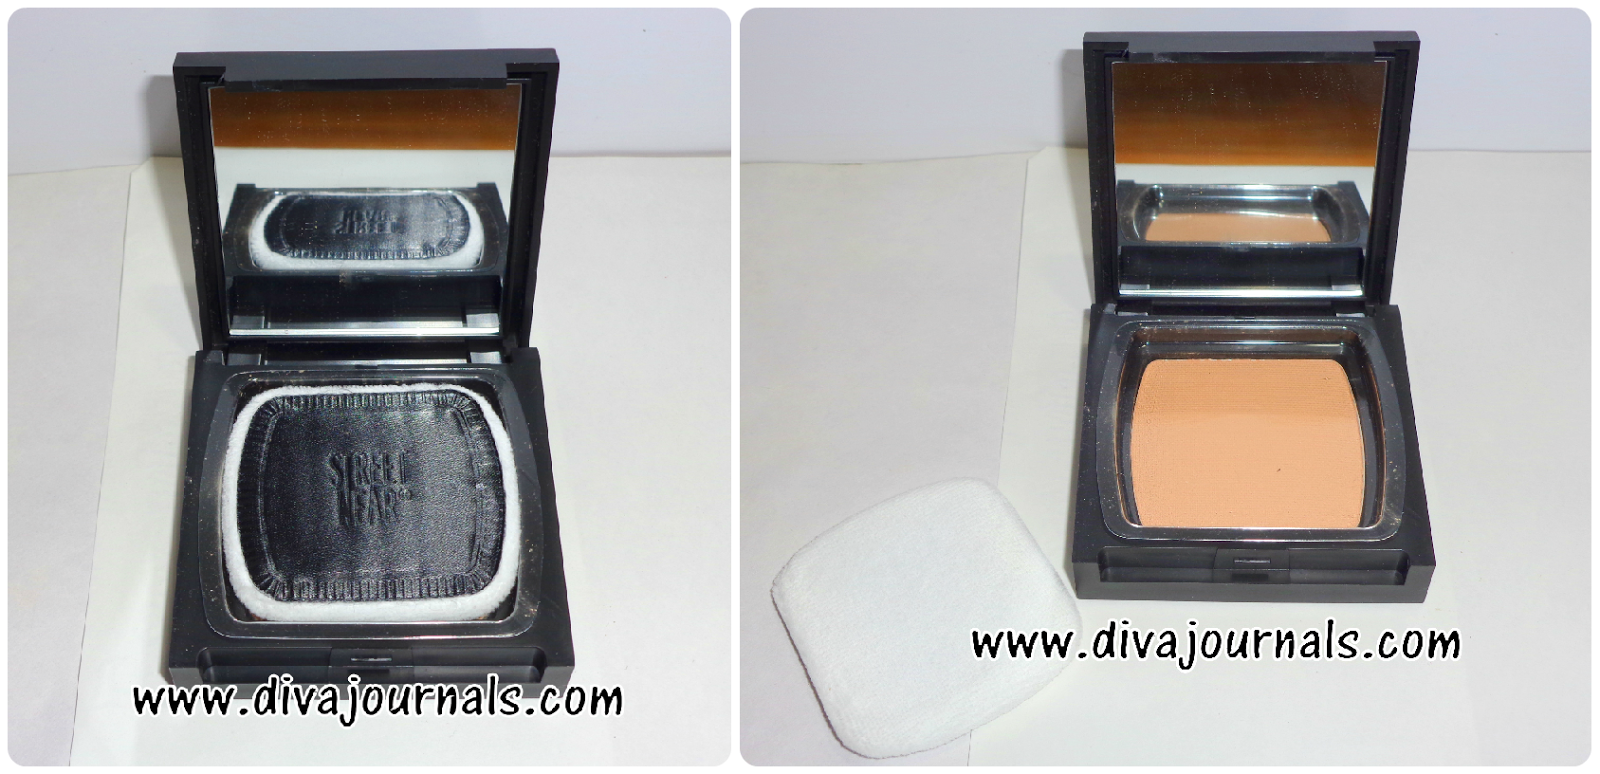 Street wear Colour Rich Perfection Compact Powder